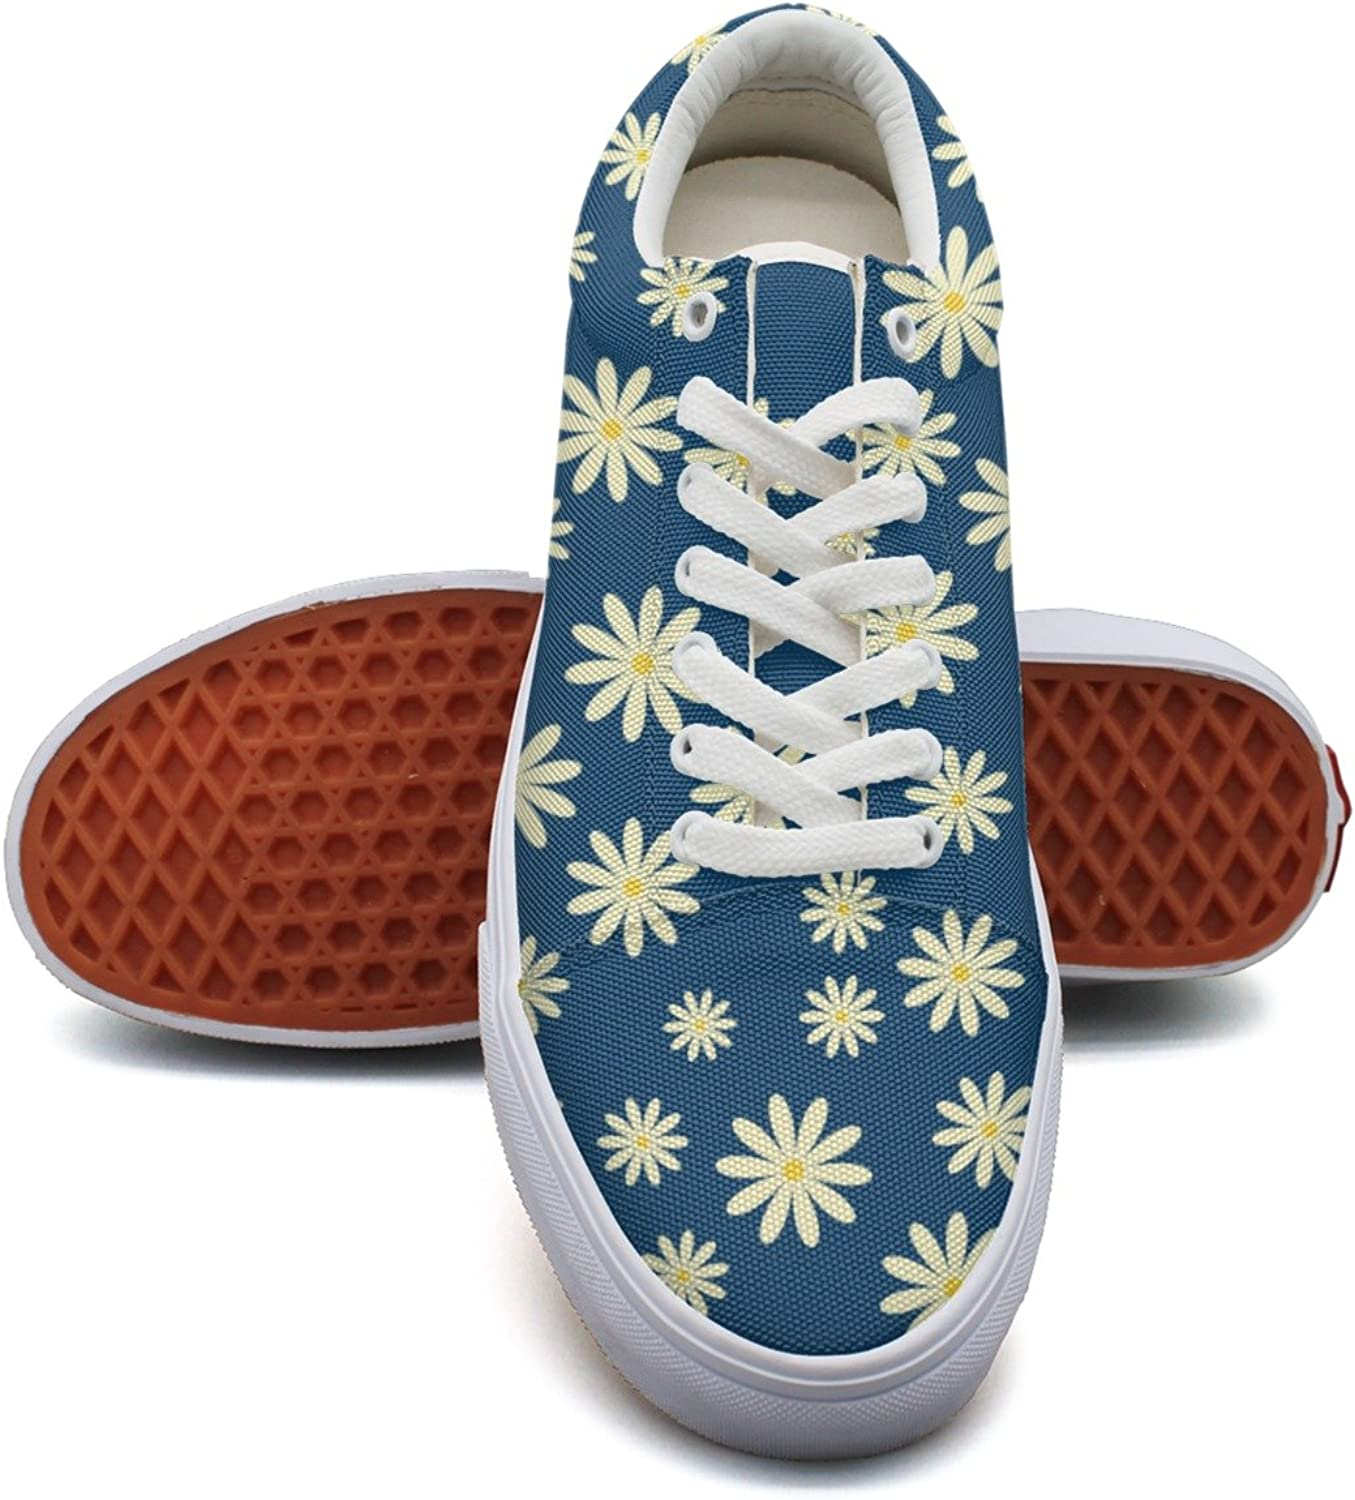 Hjkggd fgfds Casual Daisy Flower Young Women Canvas shoes